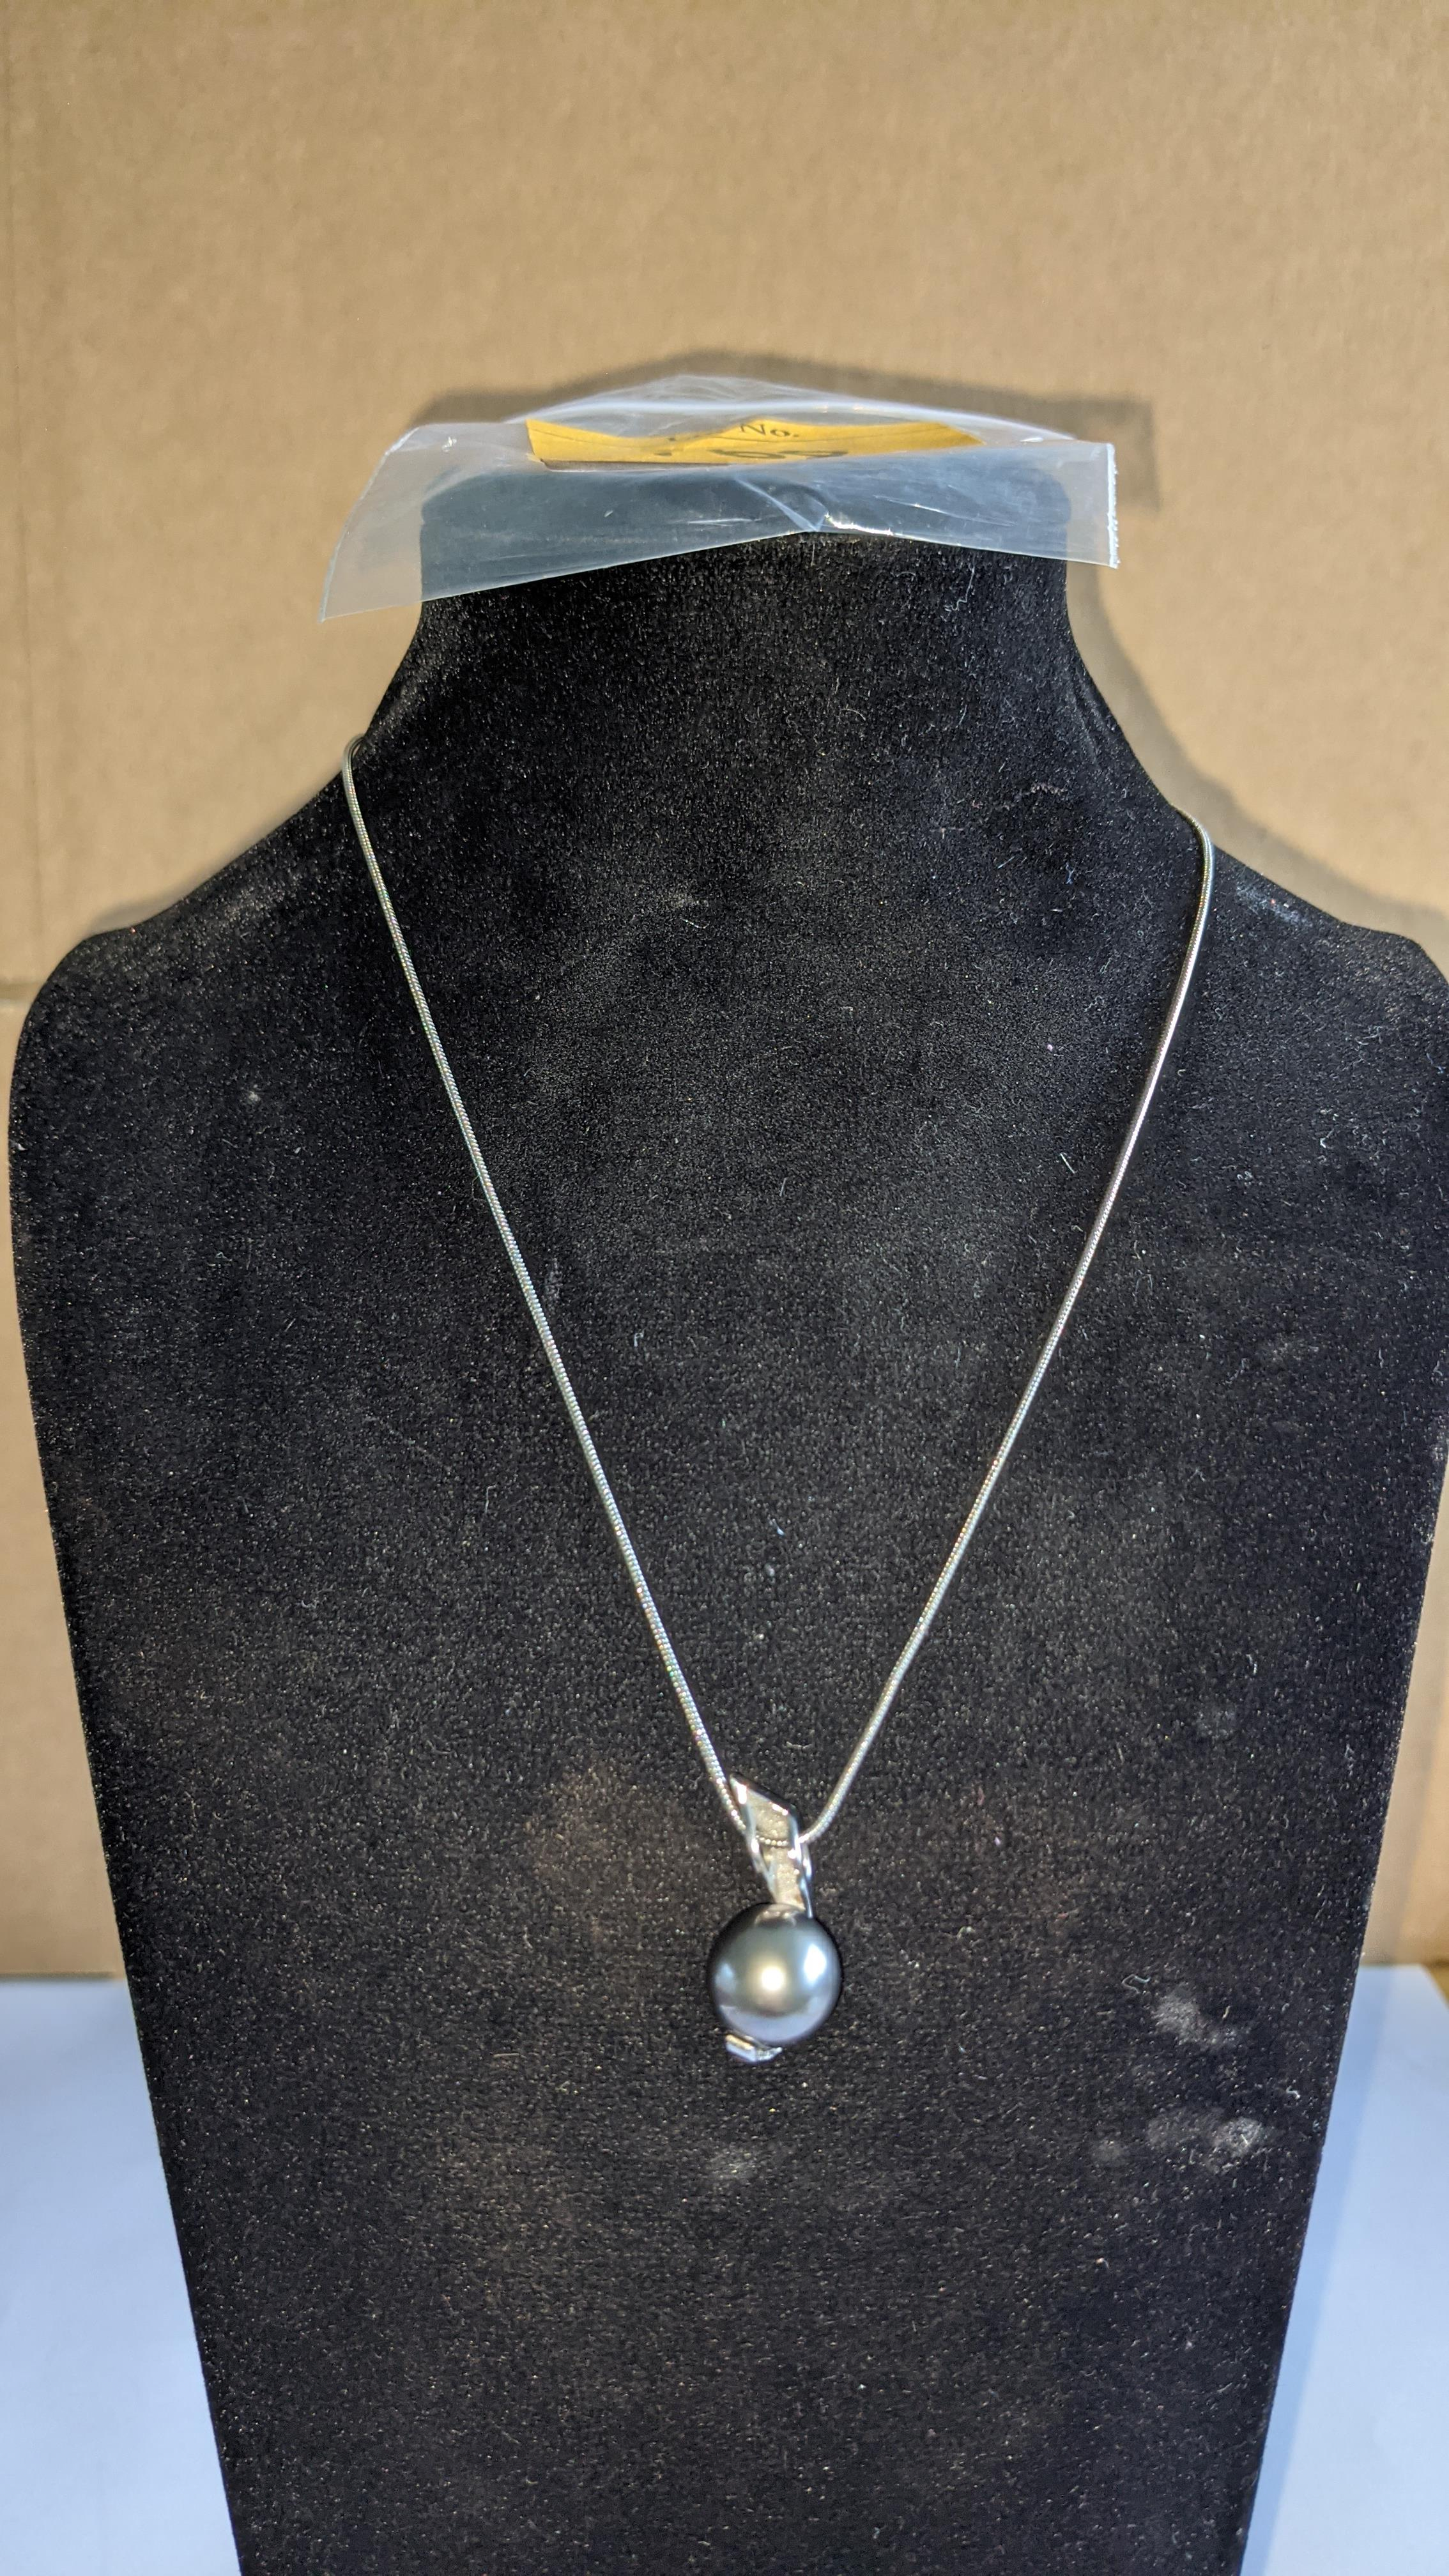 18ct white gold, diamond & Tahitian pendant & necklace set comprising pendant with central pearl & 0 - Image 14 of 17